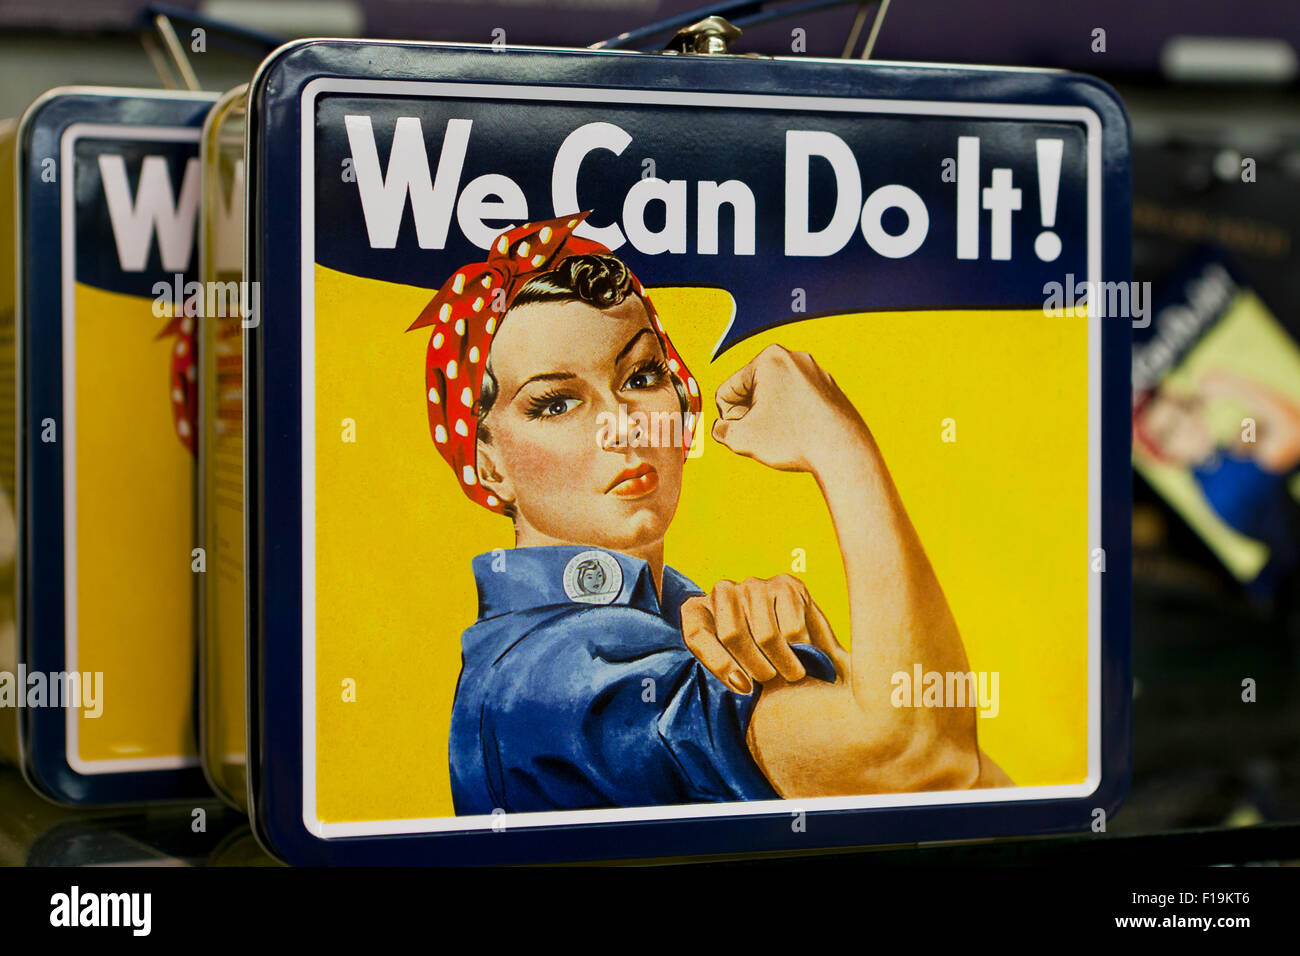 We Can Do It!, American wartime propaganda poster lunch box - USA - Stock Image